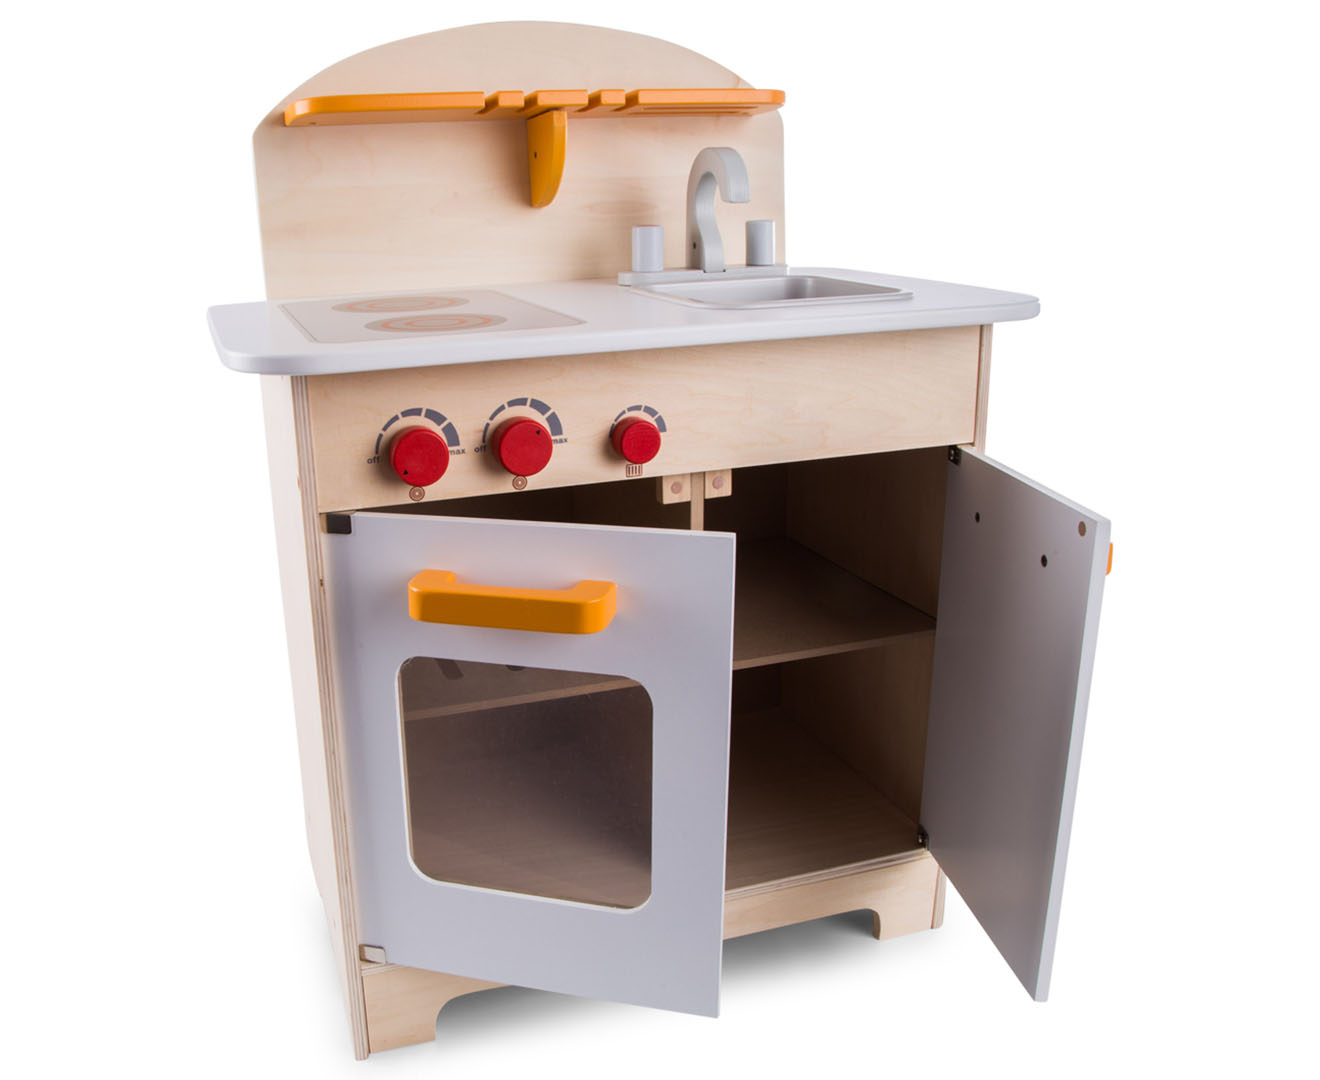 Hape E3100 - Gourmet Küche Weiß Hape Toy Kitchen Au Wow Blog